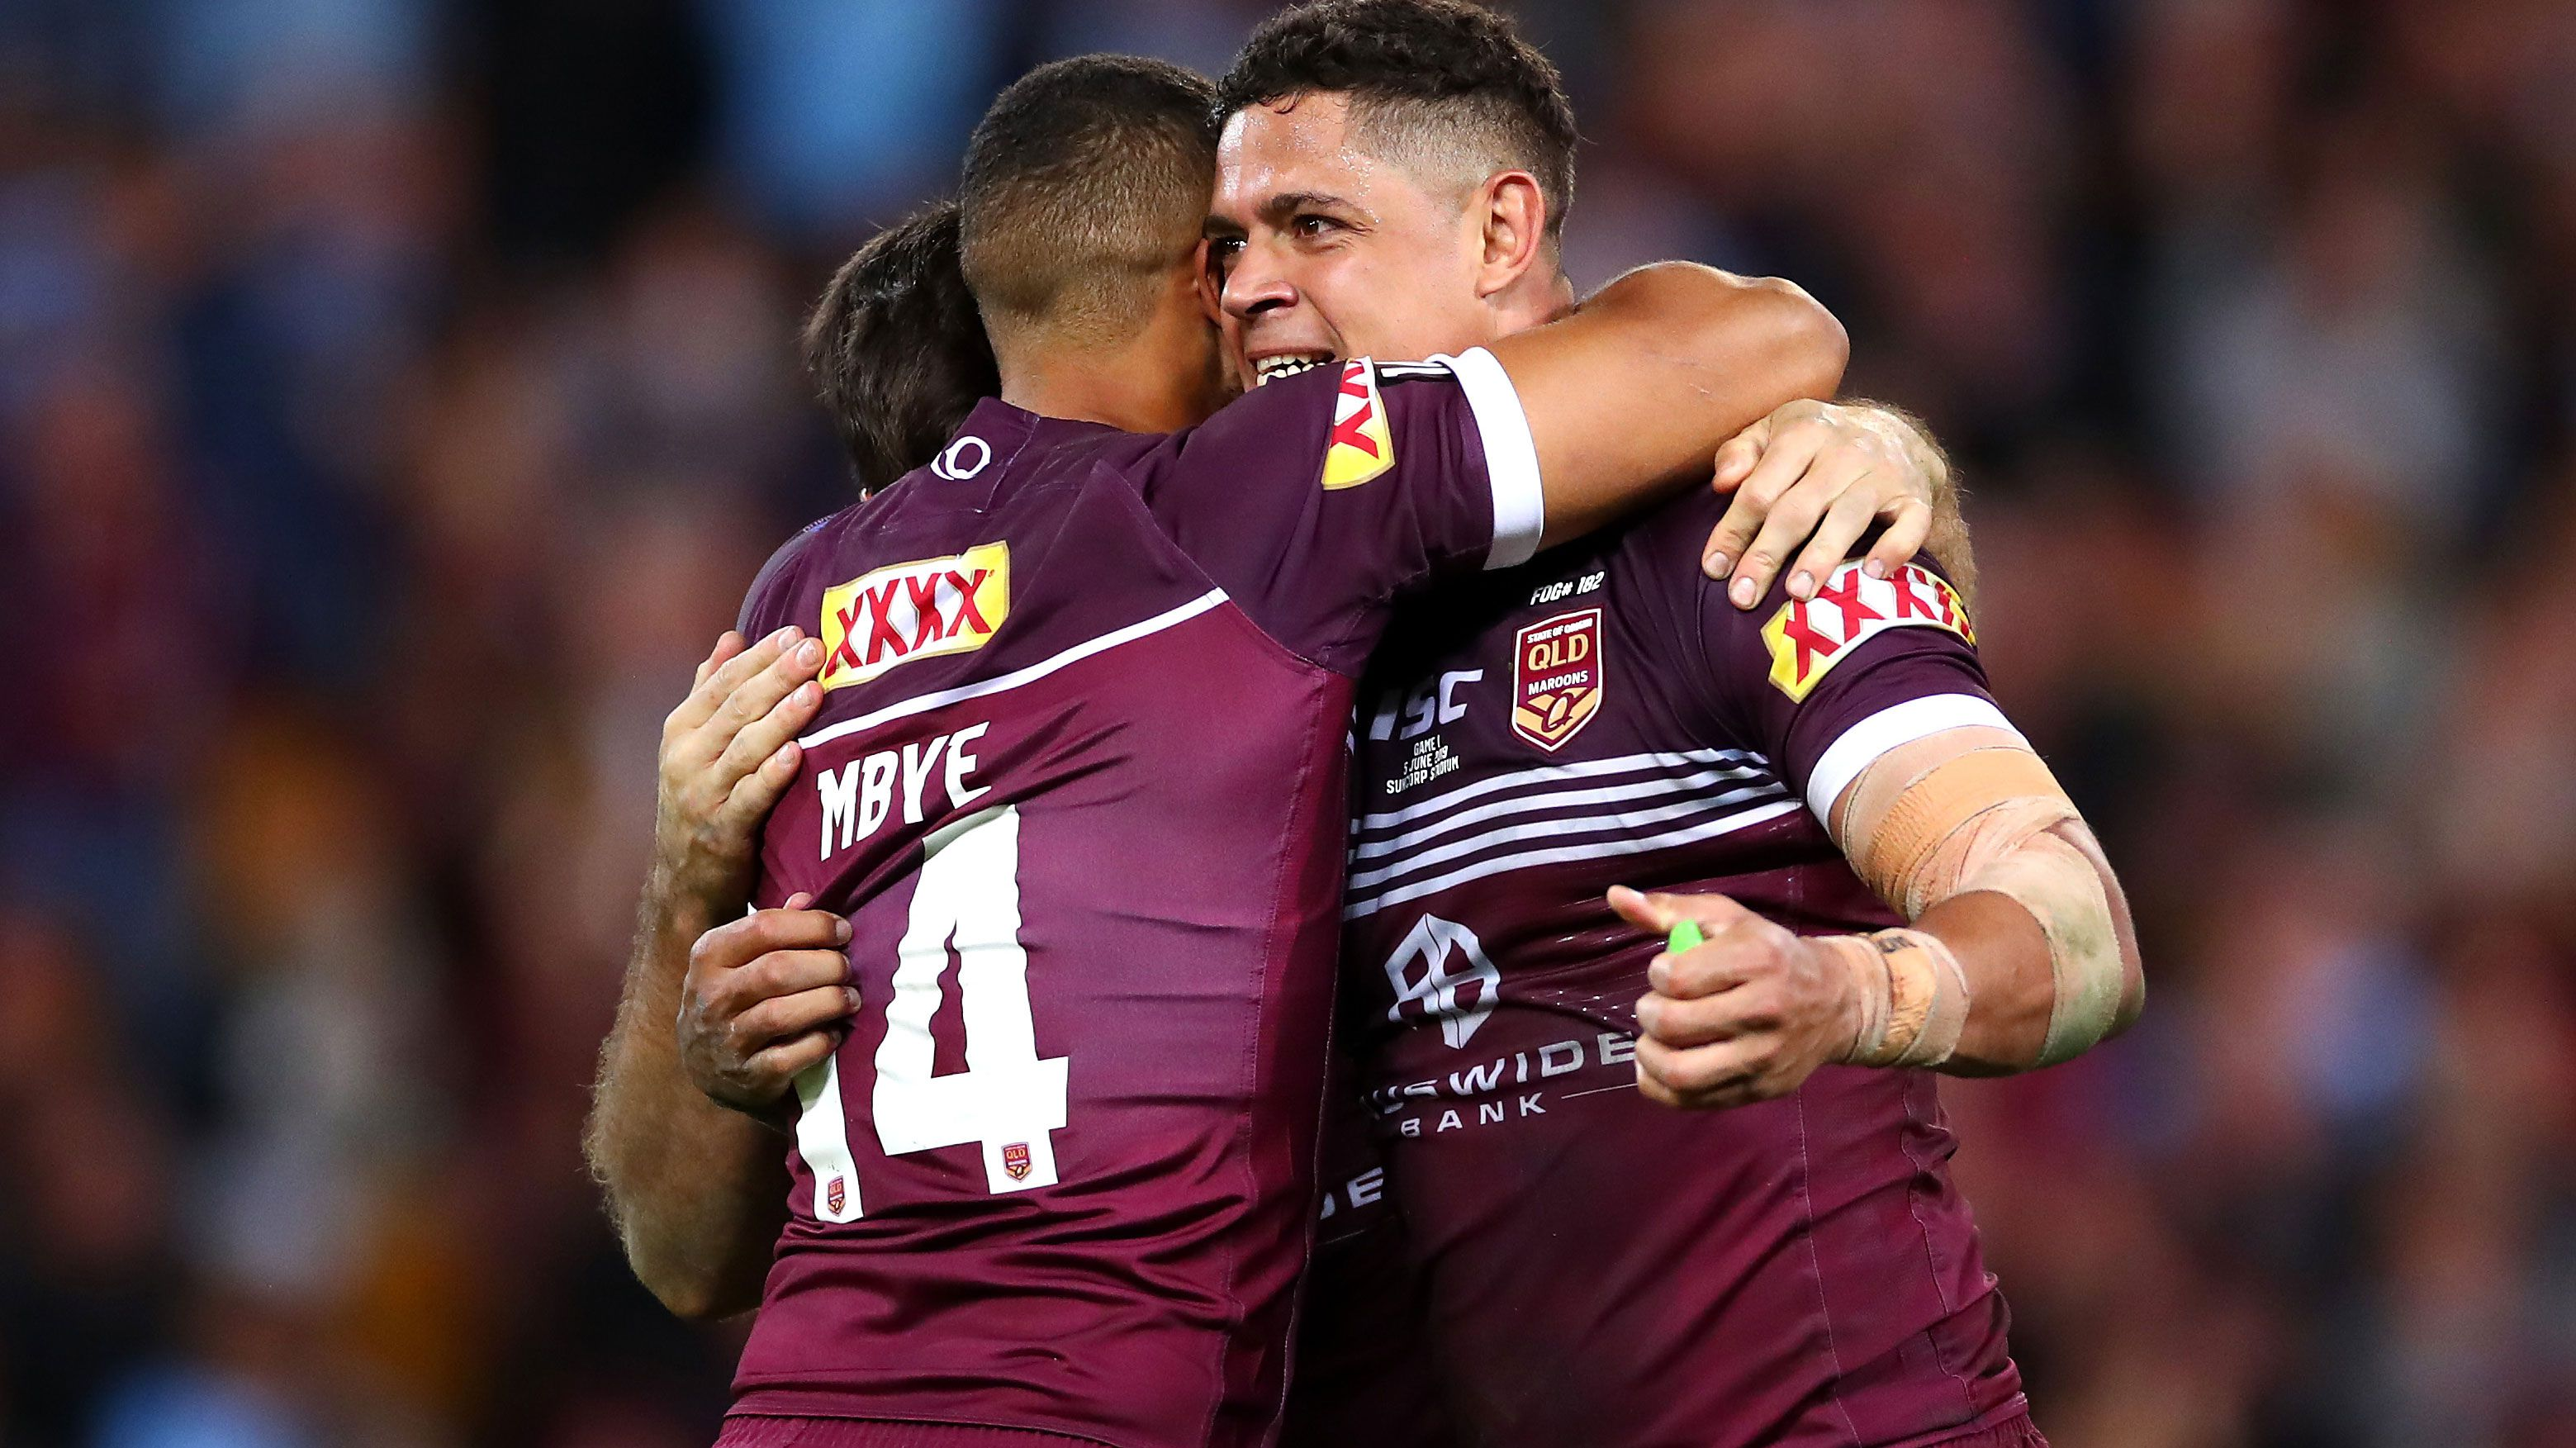 State of Origin 2019 Game 1 player ratings: NSW vs QLD